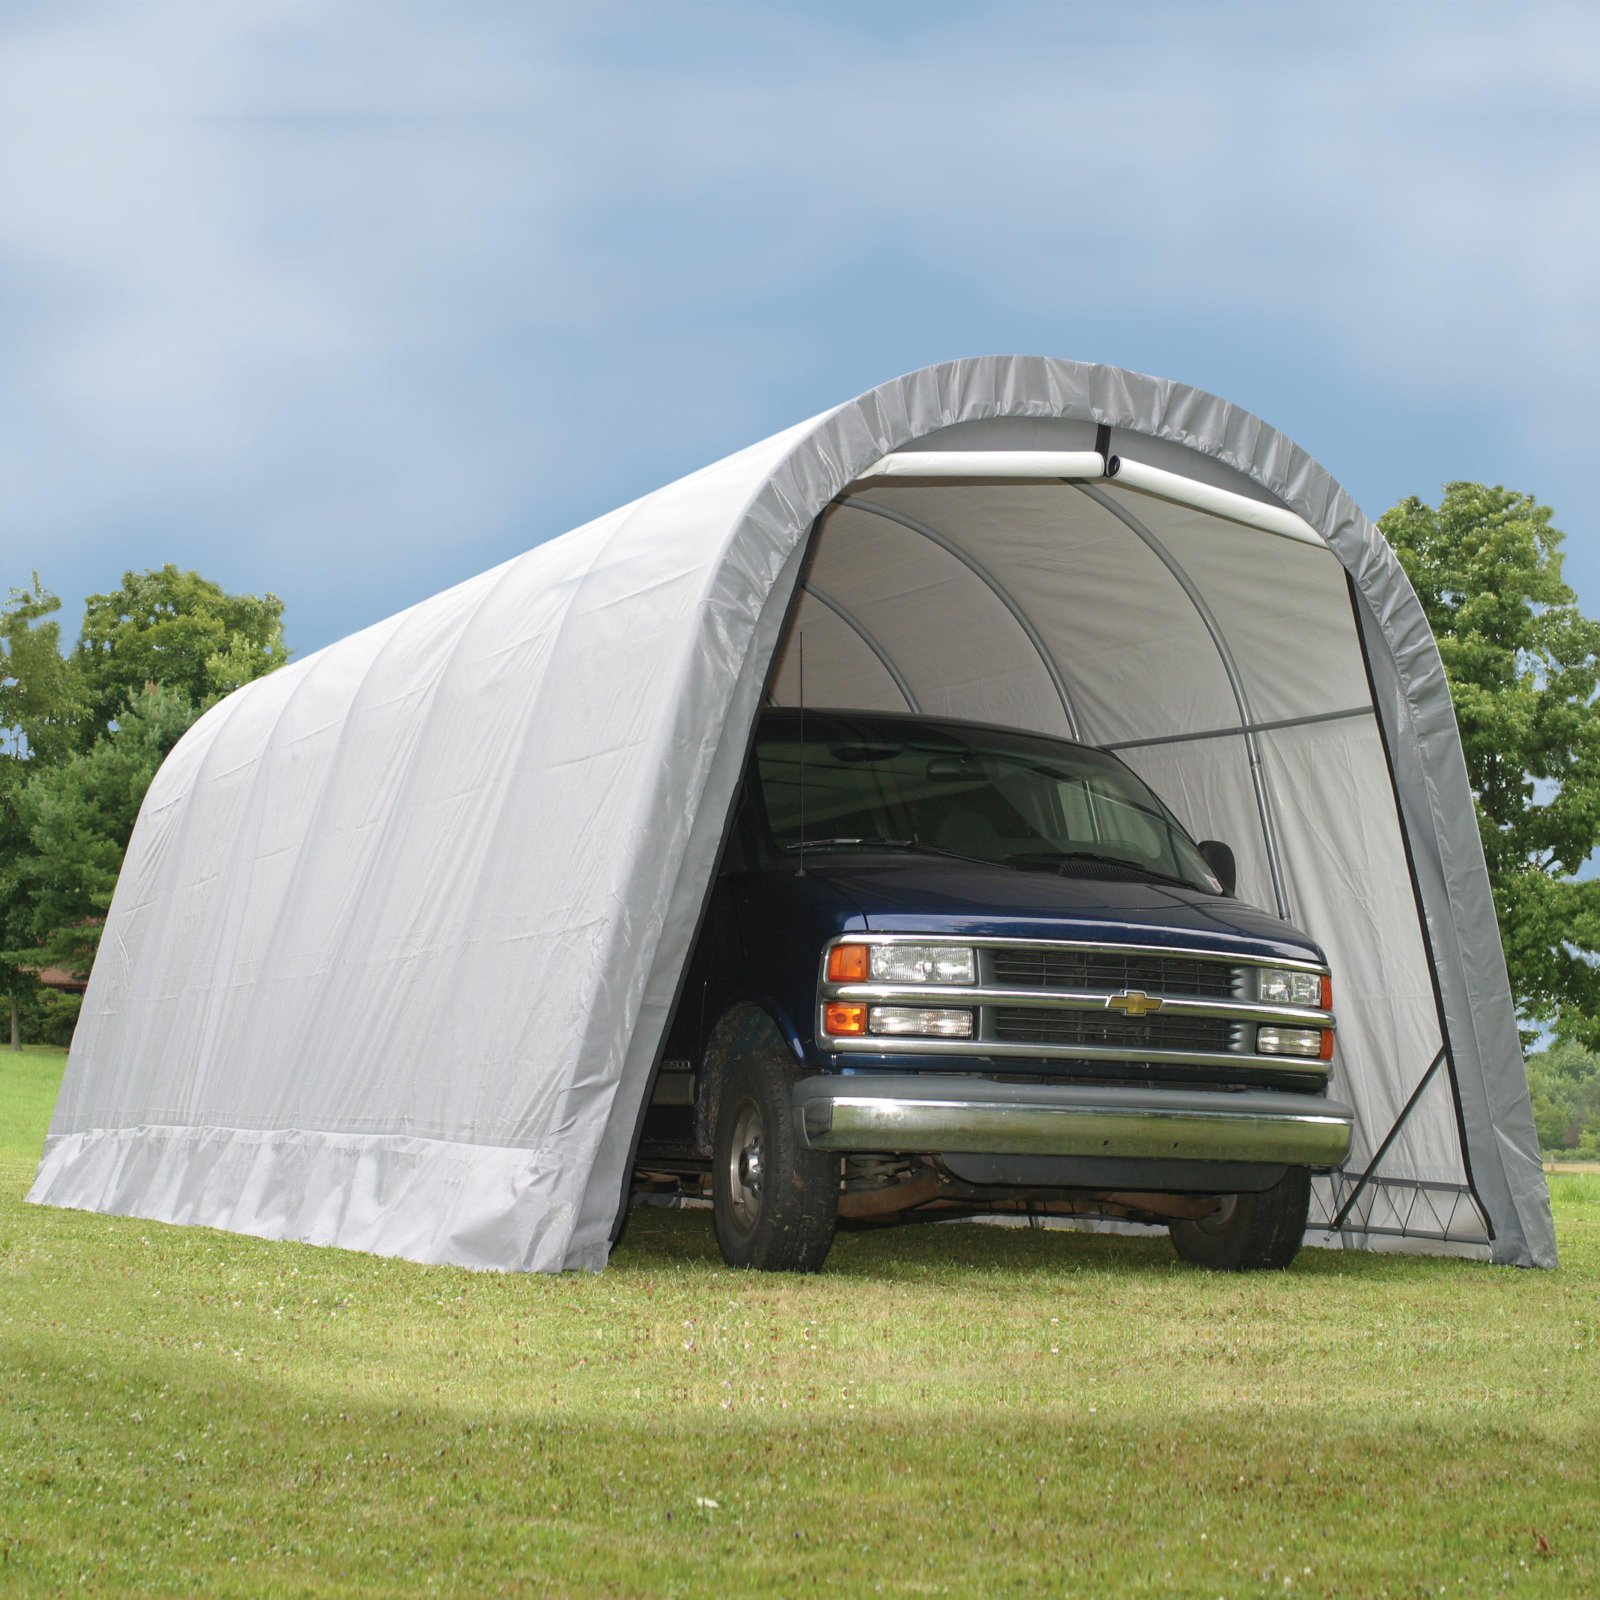 Shelterlogic 13' x 24' x 10' Round Style Shelter, Green